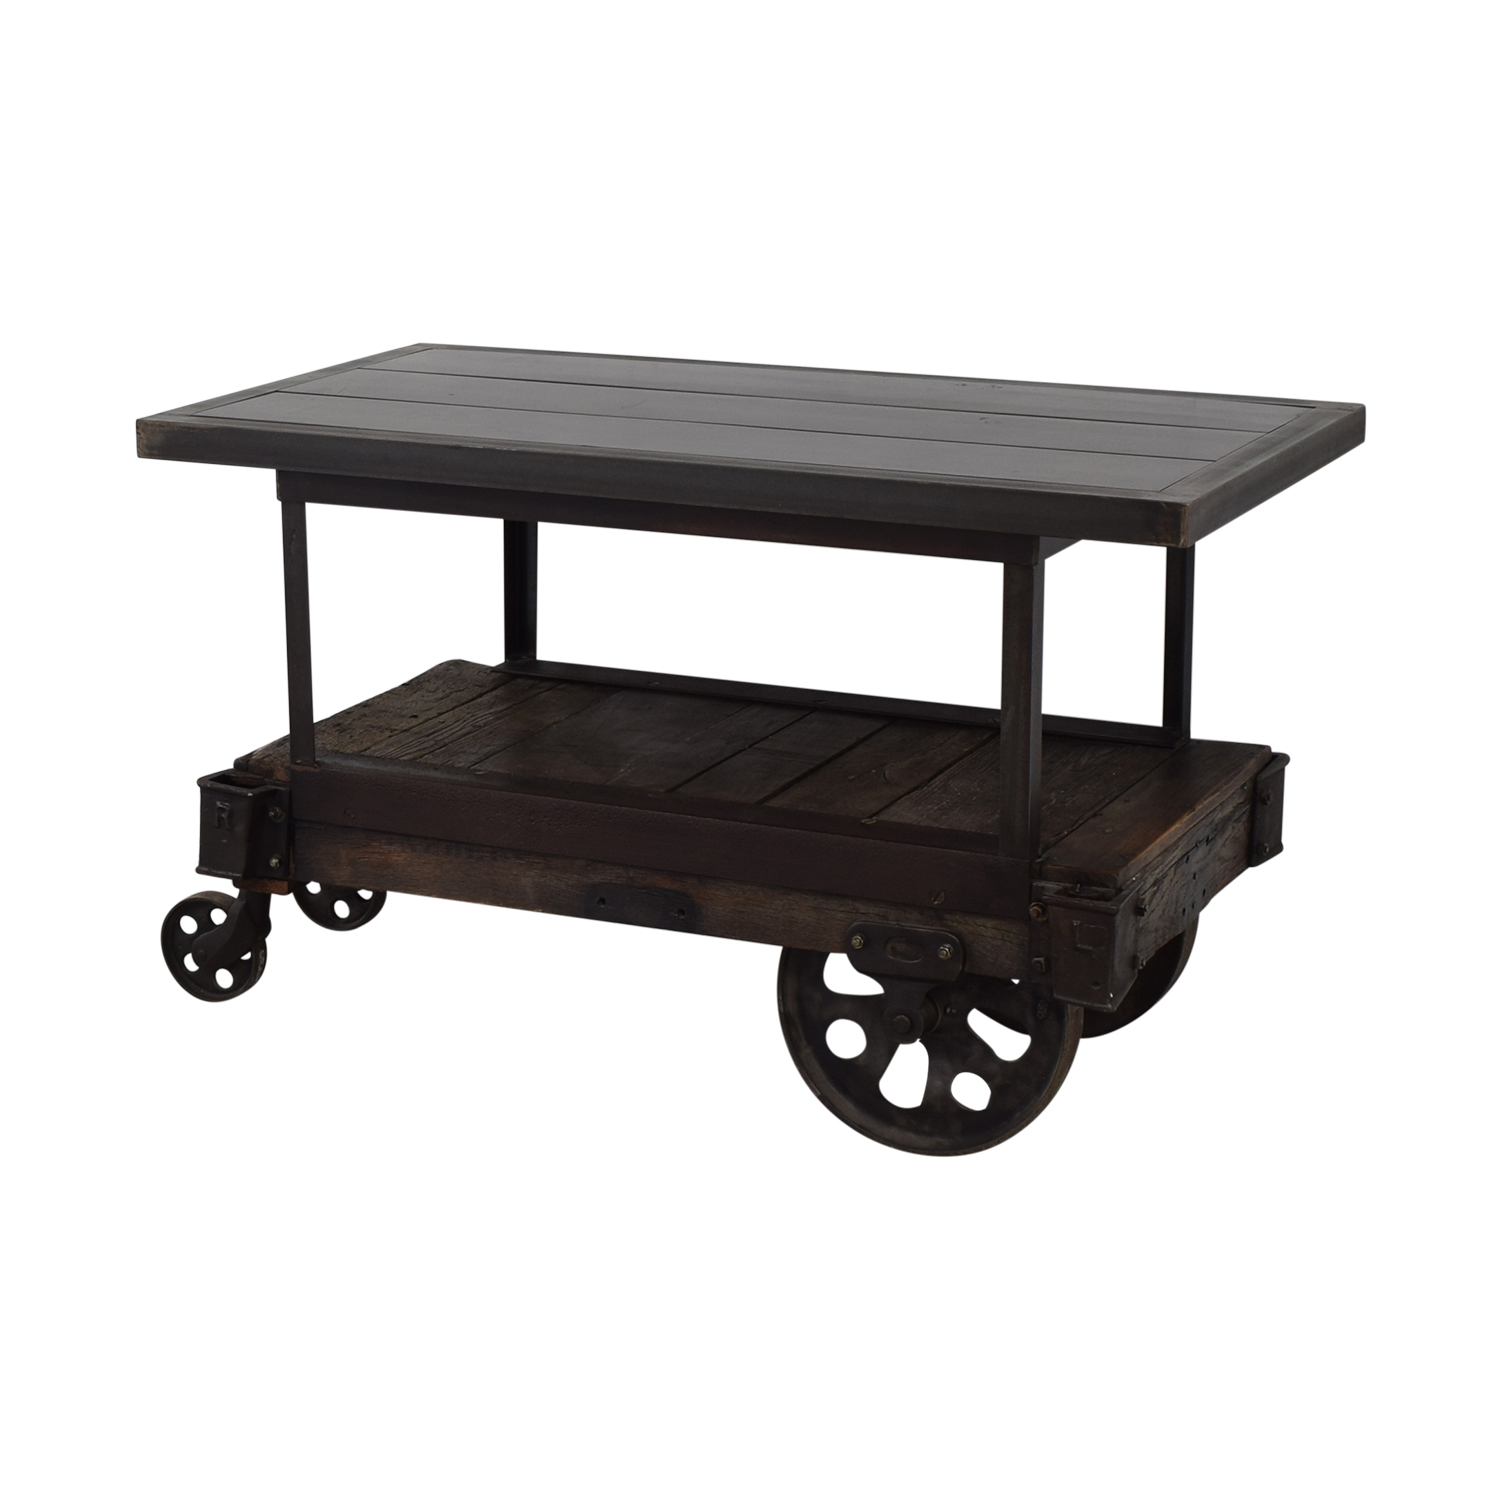 Rustic Wood Table Cart used